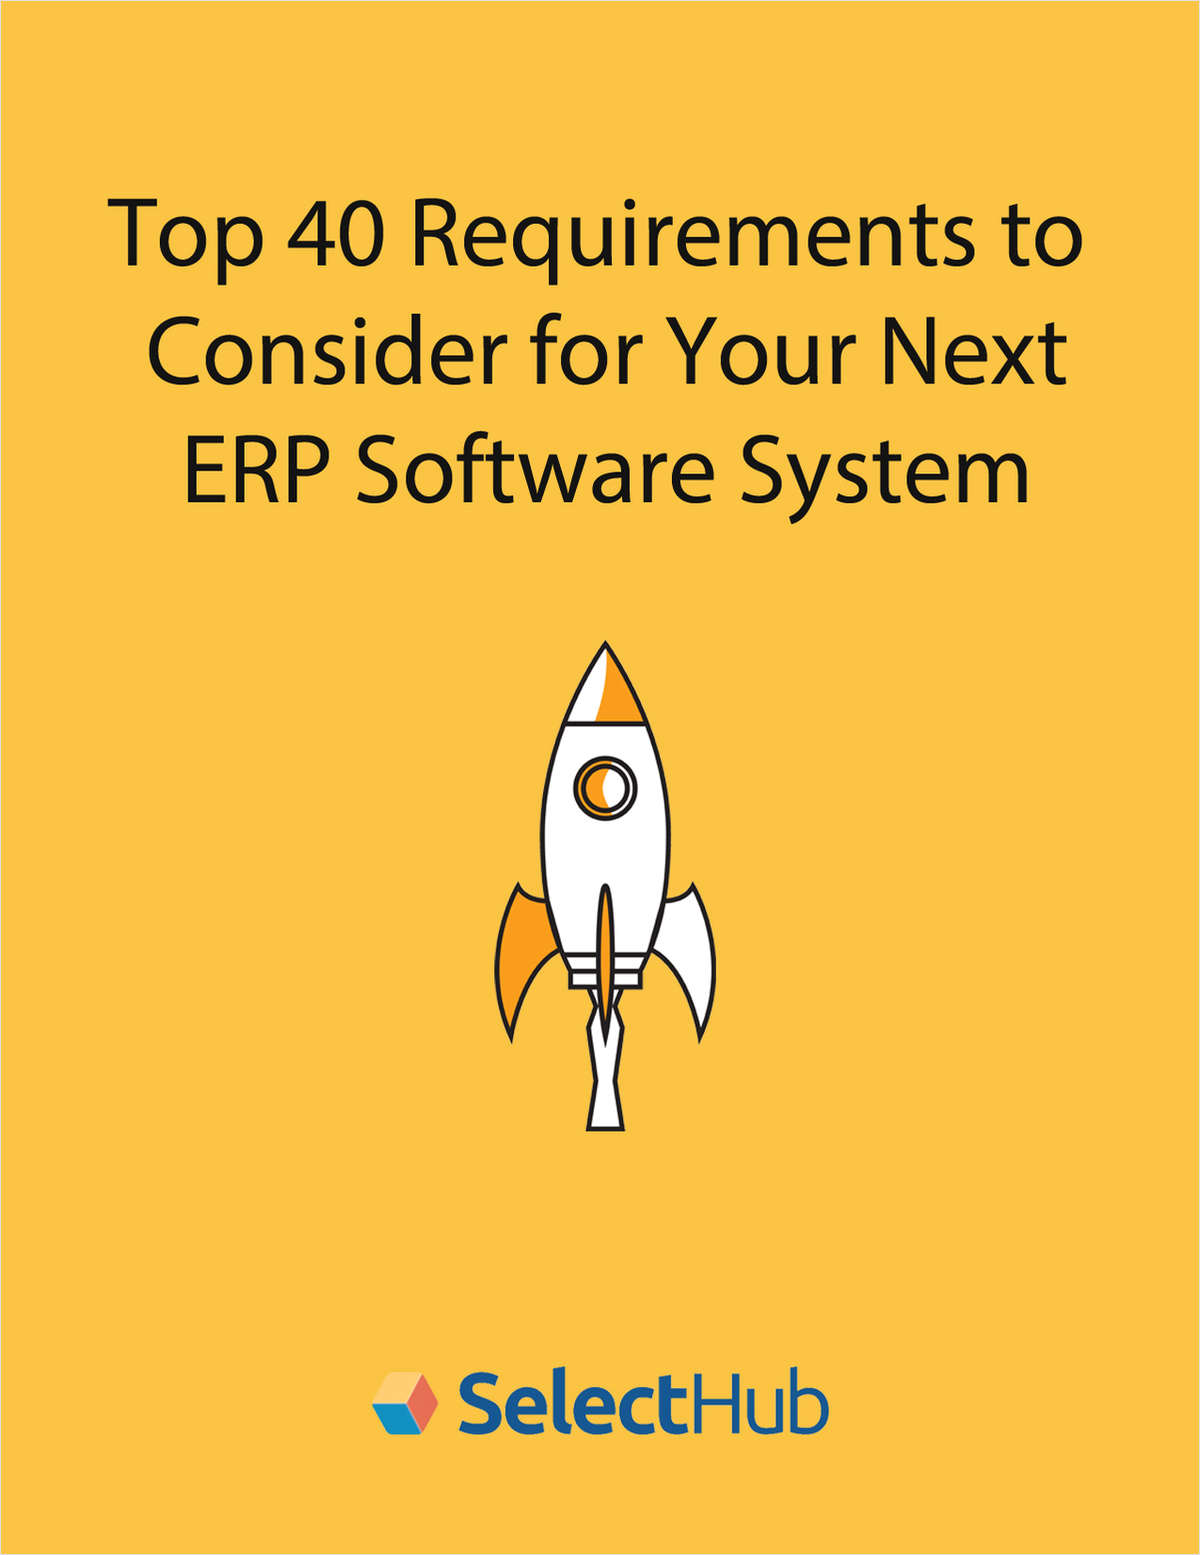 Top 40 Requirements to Consider for Your Next ERP Software System